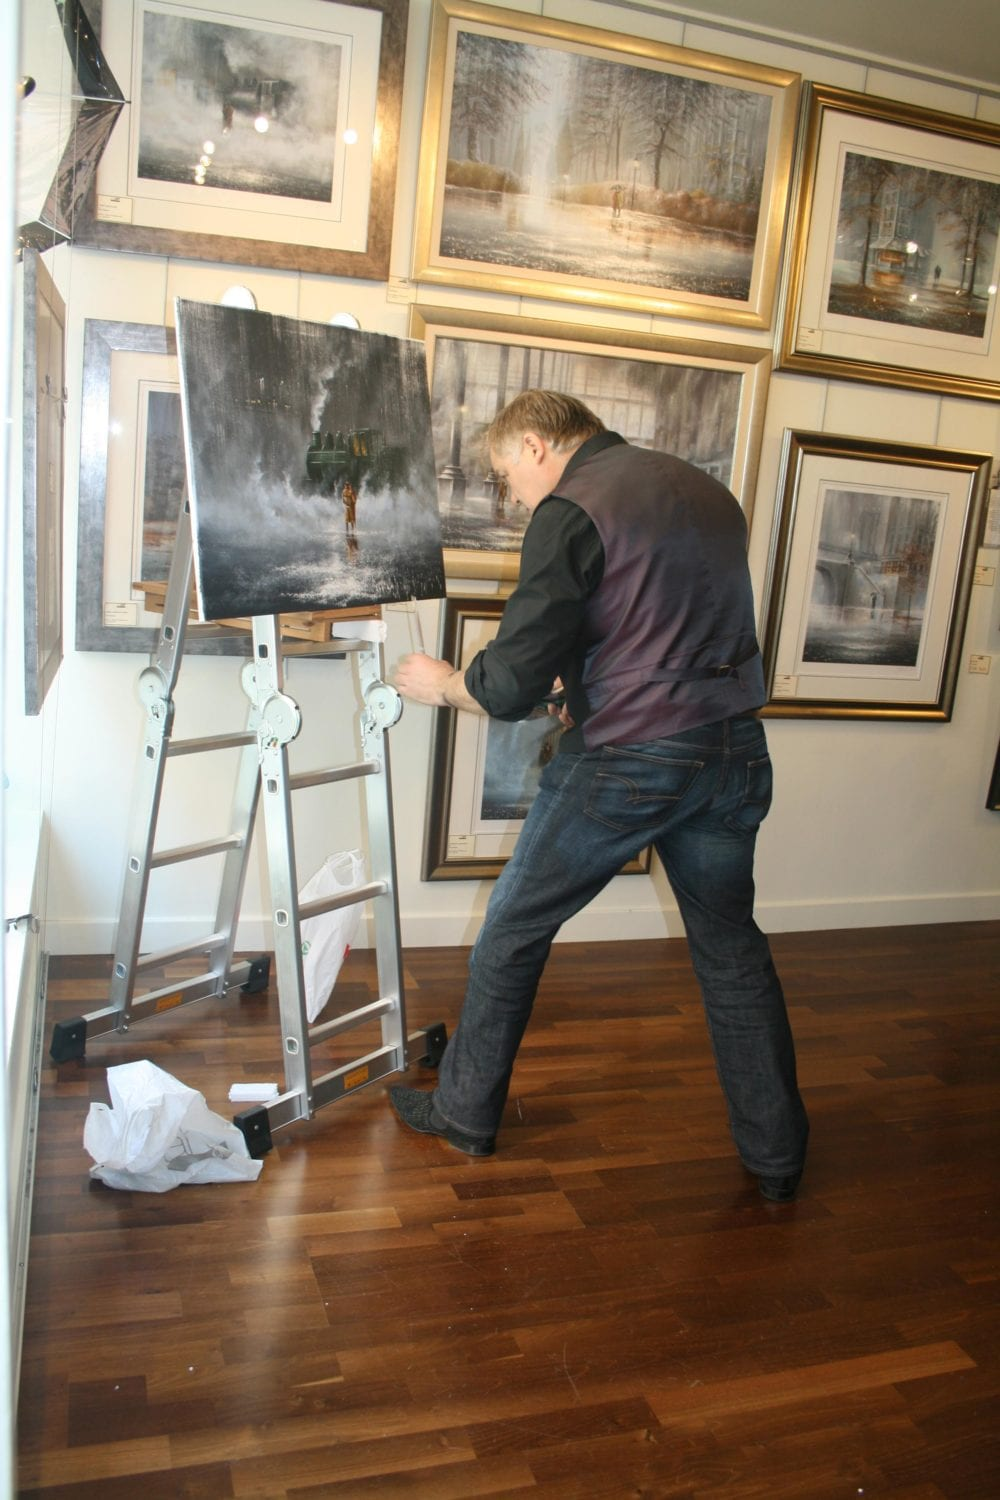 Jeff Rowland Exhibition is a Huge Success